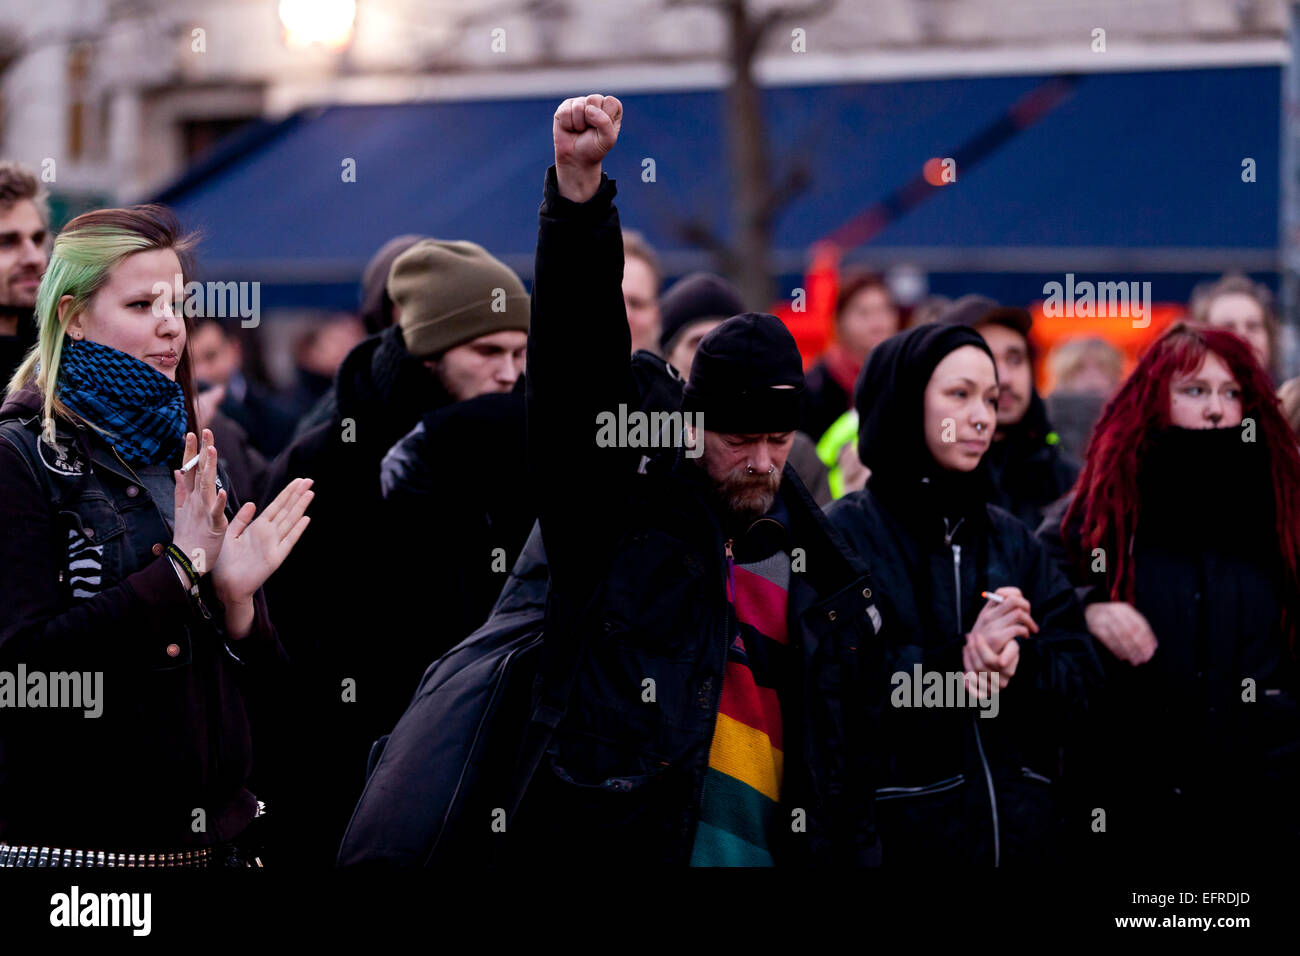 Copenhagen, Denmark. 9th February, 2015. Protestors against the PEGIDA movement I Copenhagen gathered at today's - Stock Image